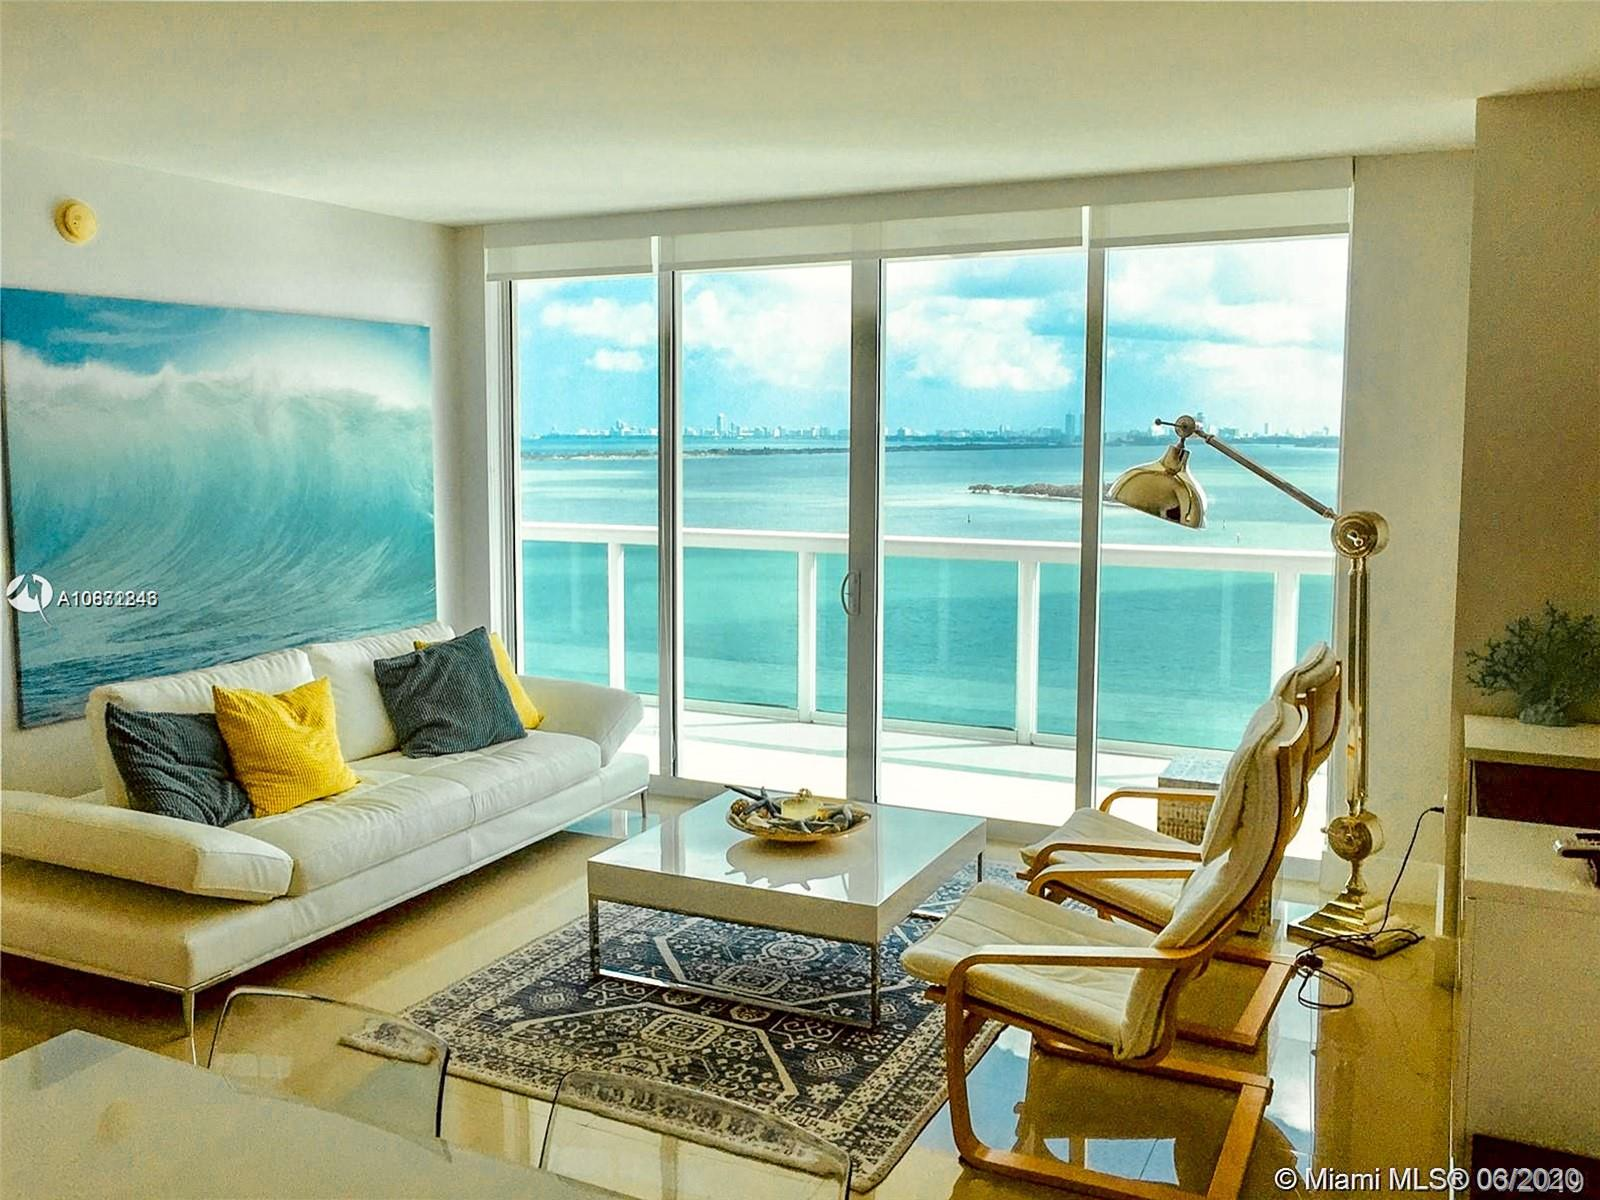 This is a wonderful upgraded 2/2 Condo at 1800 Club near Downtown Miami. Upgraded bathrooms, kitchen and closets. New window treatment and over $40K in upgrades recently invested in the apartment.Wide direct East Ocean/Bay views from living room, dining room and bedrooms. Split bedrooms with 1222Ft2 of AC space plus 252 Ft2 of terrace. Tile floors. This is a full service building includes concierge, valet service, on site management, pool, gym, spa, steam room, sauna, play room and more. HOA includes cable and internet. Walk to park, cafes, night life, supermarkets, banks and more. Five minutes to South Beach, Downtown Miami, Brickell, American Airlines Arena, Performing Arts Center, Port of Miami, Health District and Easy access to all major highways.